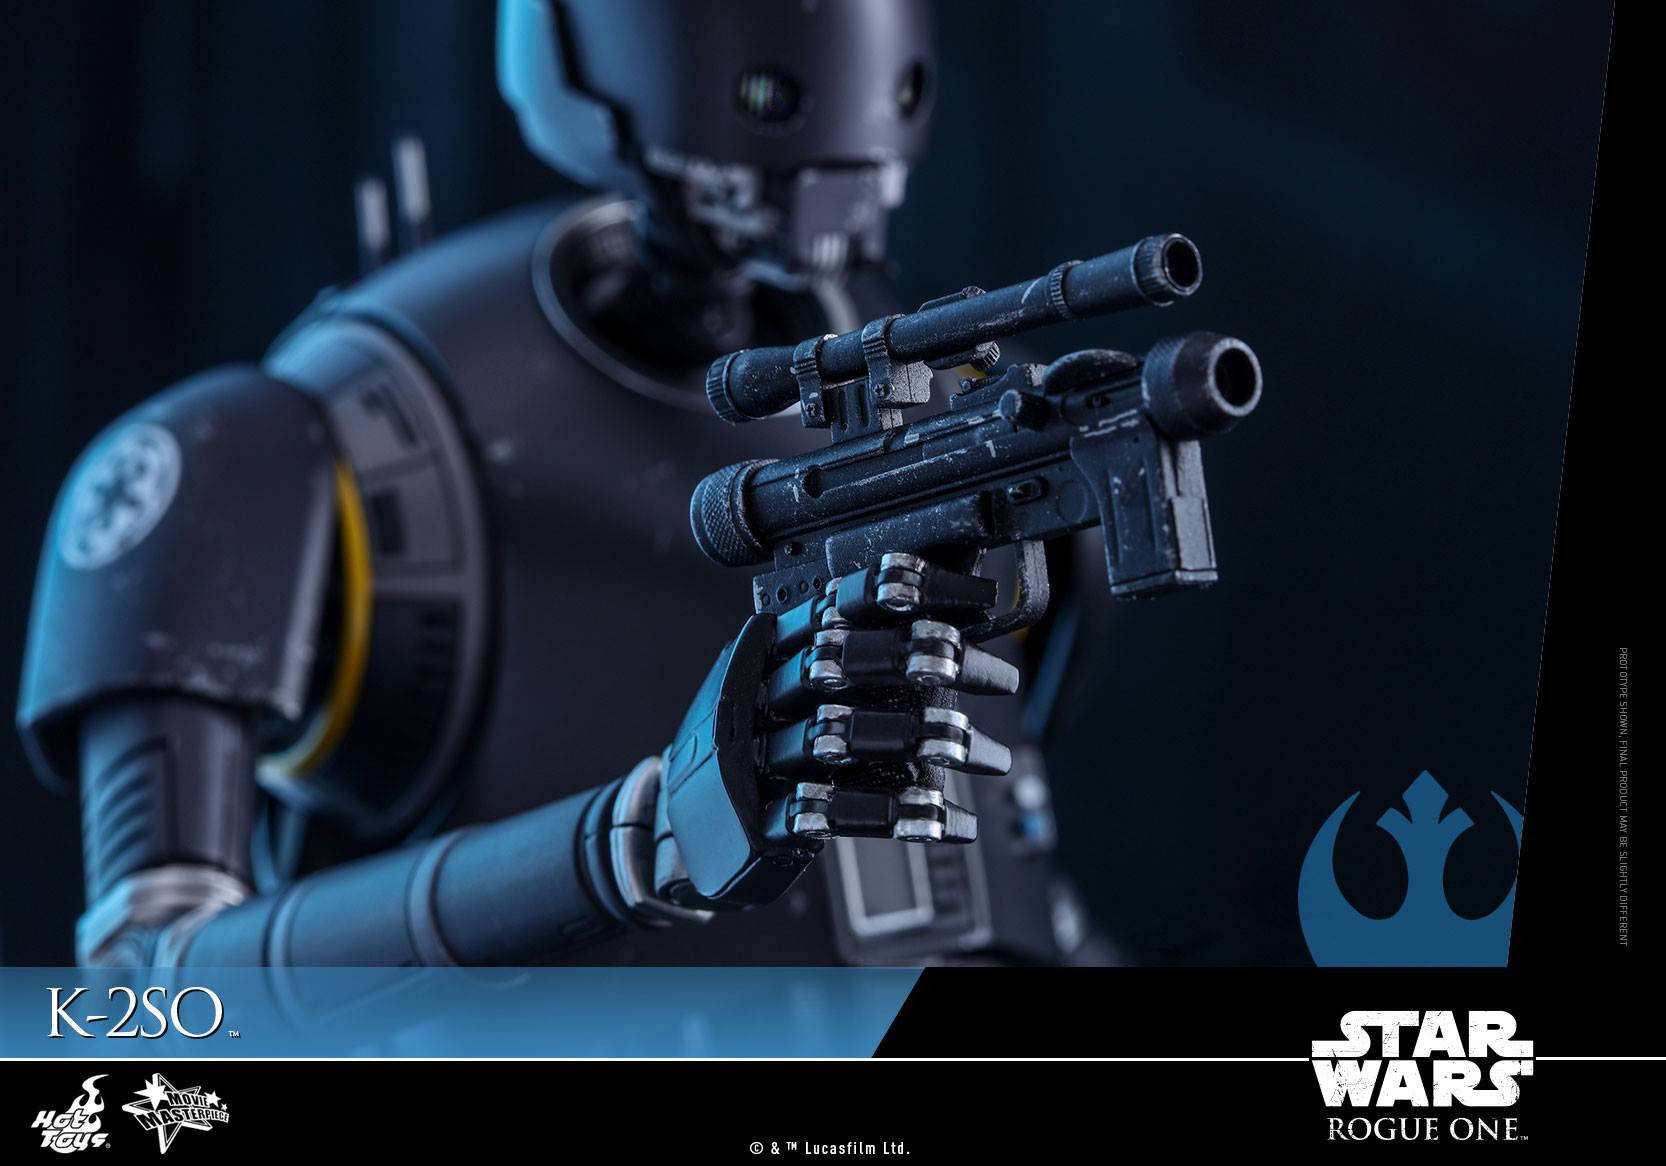 Hot Toys - MMS406 - Rogue One: A Star Wars Story - K-2SO - Marvelous Toys - 17